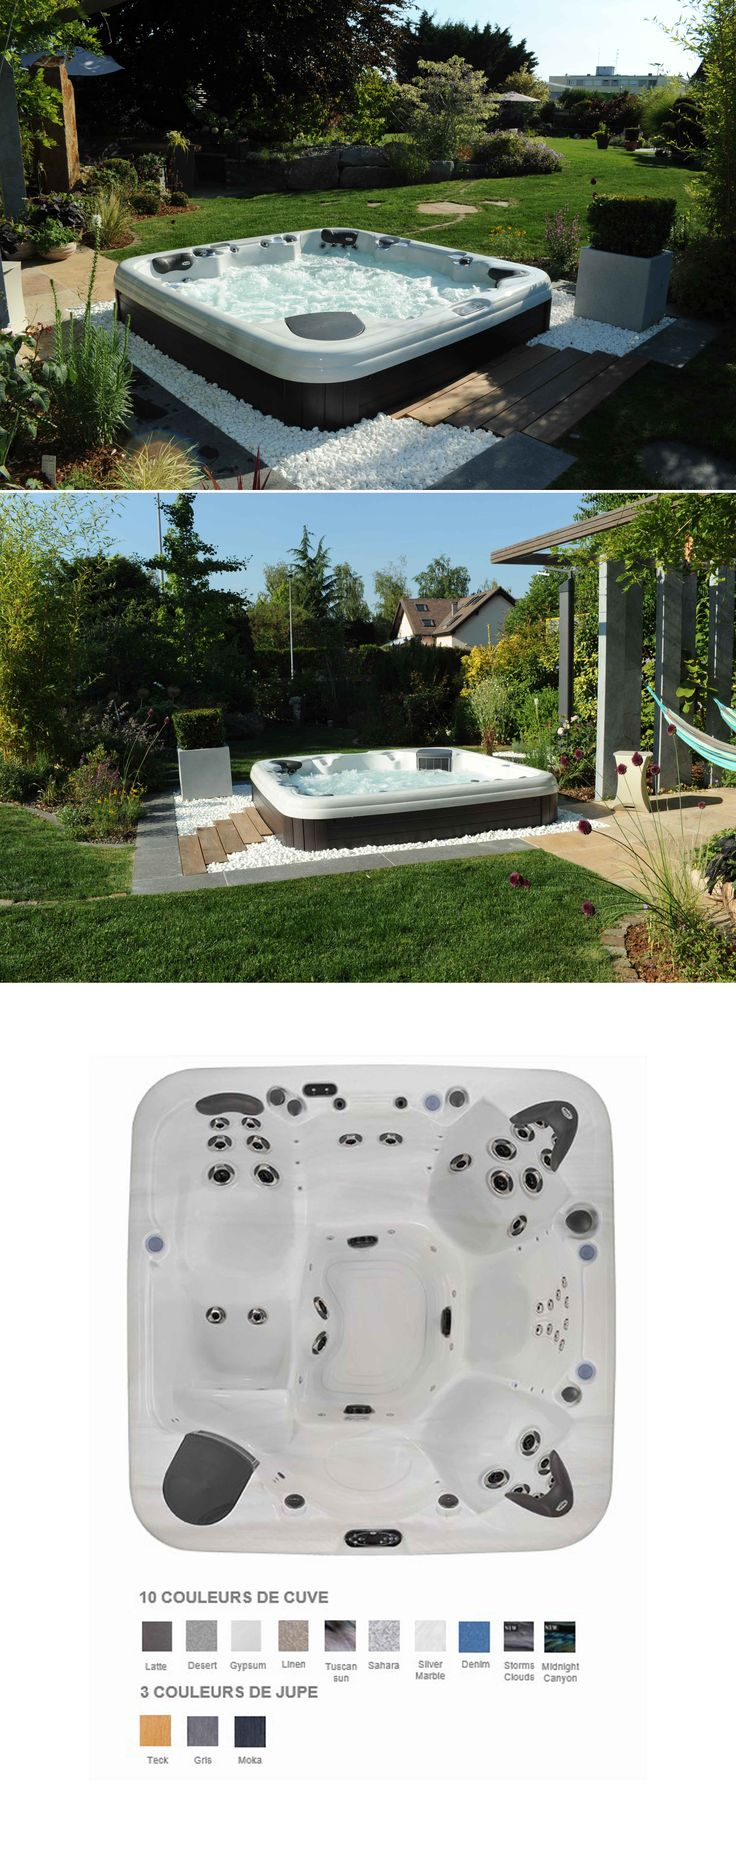 8 best hot tubs images on pinterest bubble baths hot tubs and jacuzzi. Black Bedroom Furniture Sets. Home Design Ideas